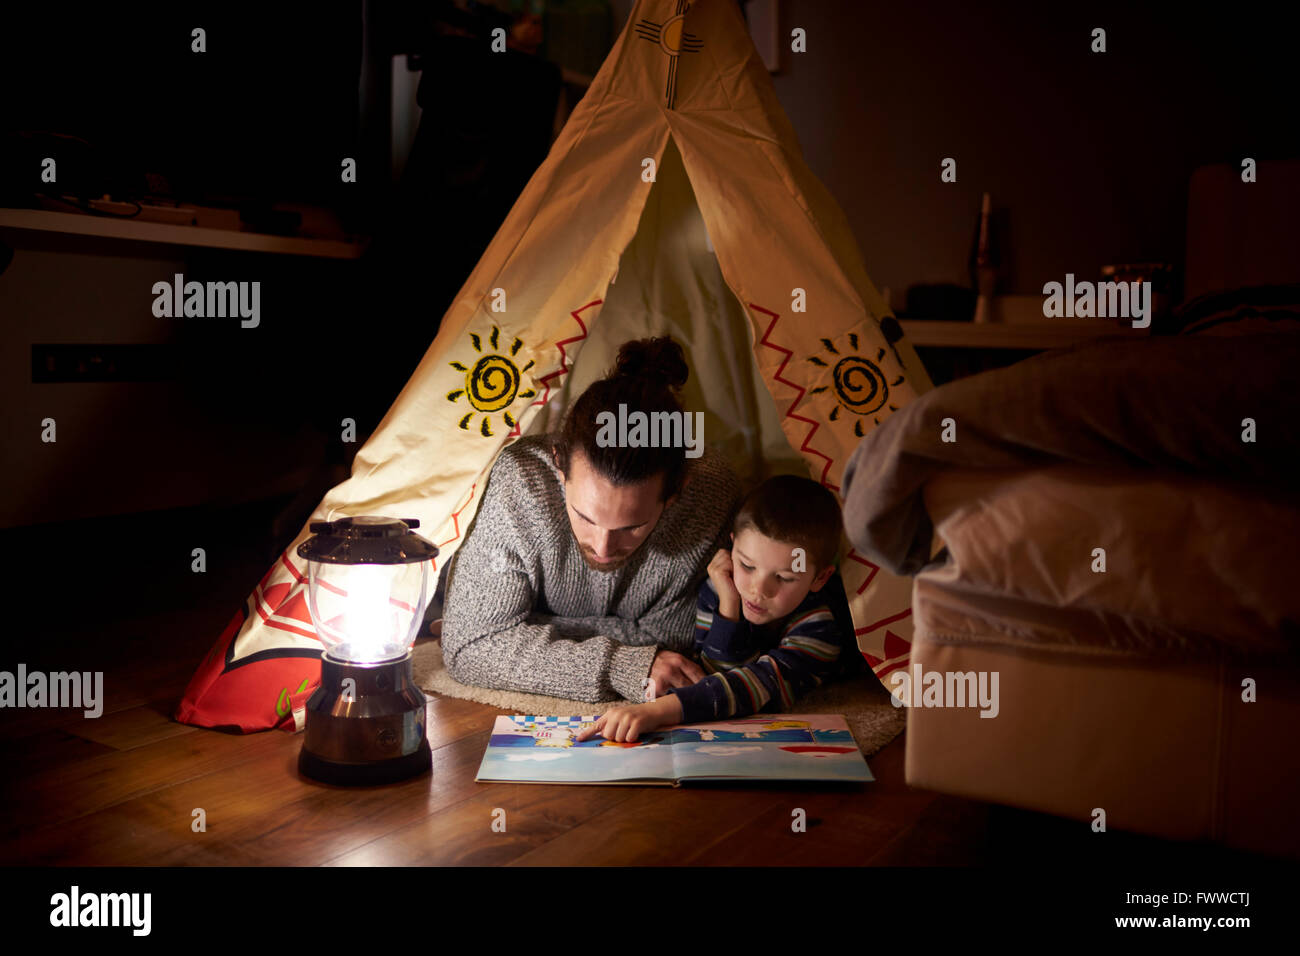 Father And Son Reading Inside Tent Set Up Indoors - Stock Image